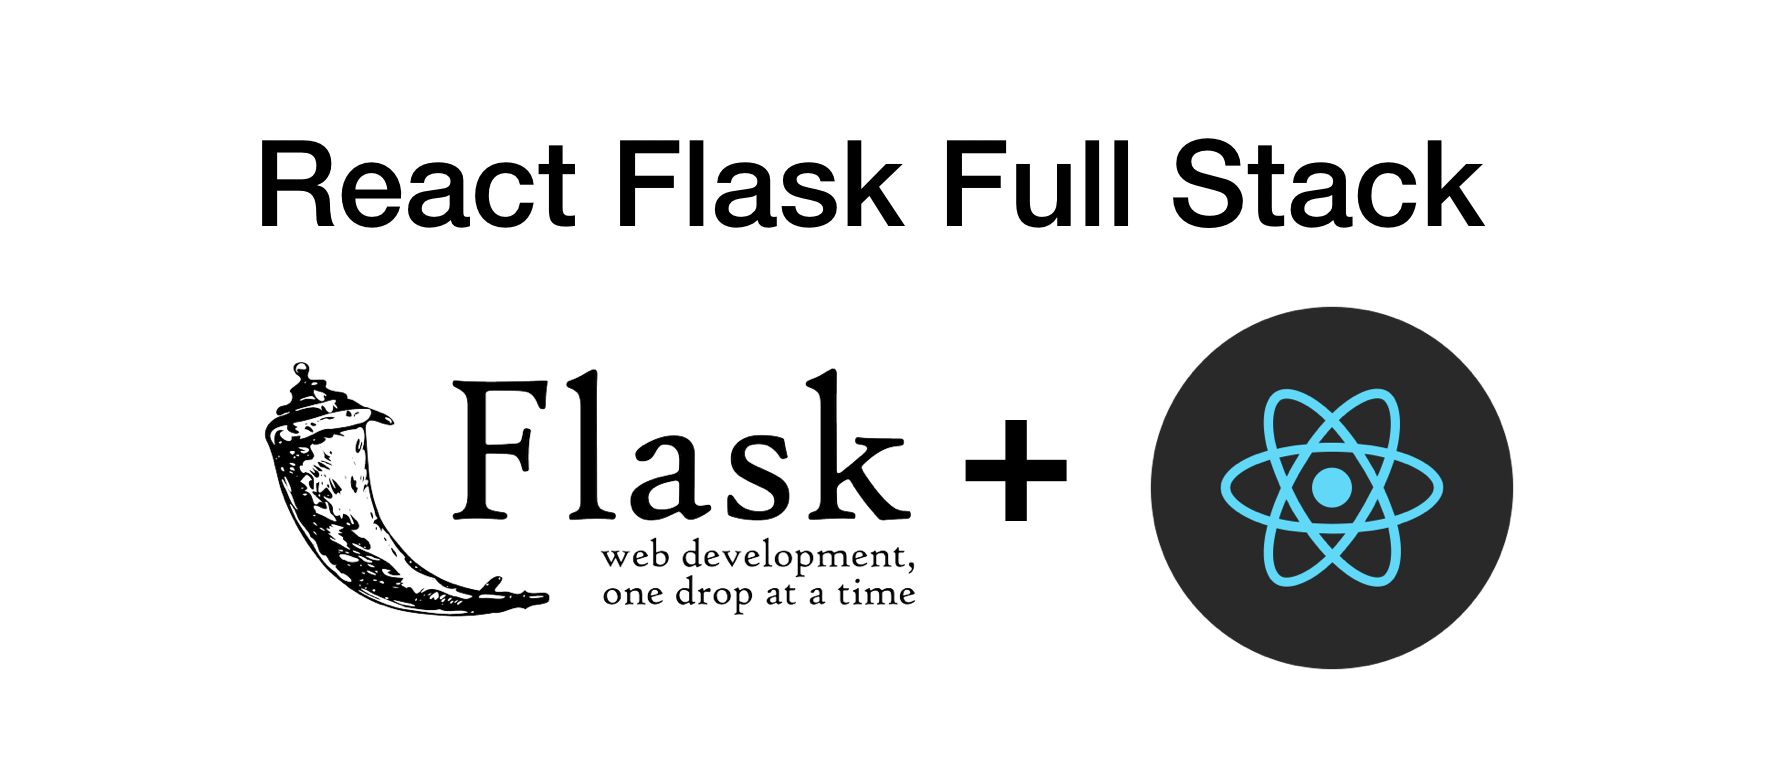 Building MVP with React Flask Full Stack – Day 1 – Dev setup